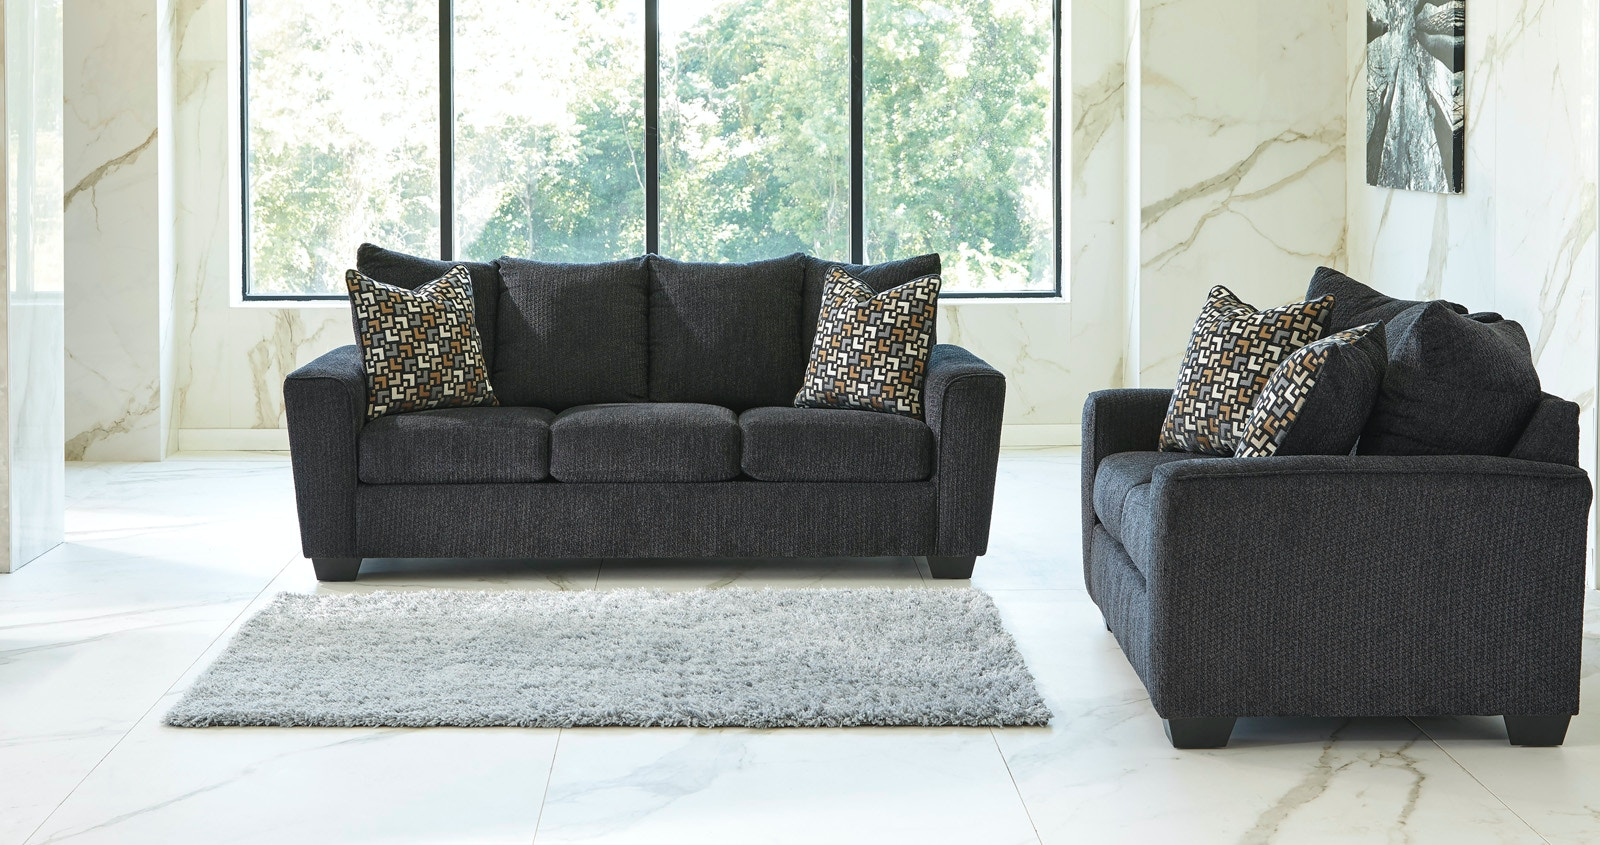 Signature Design By Ashley Wixon Sofa And Loveseat   Slate 422891 Part 75